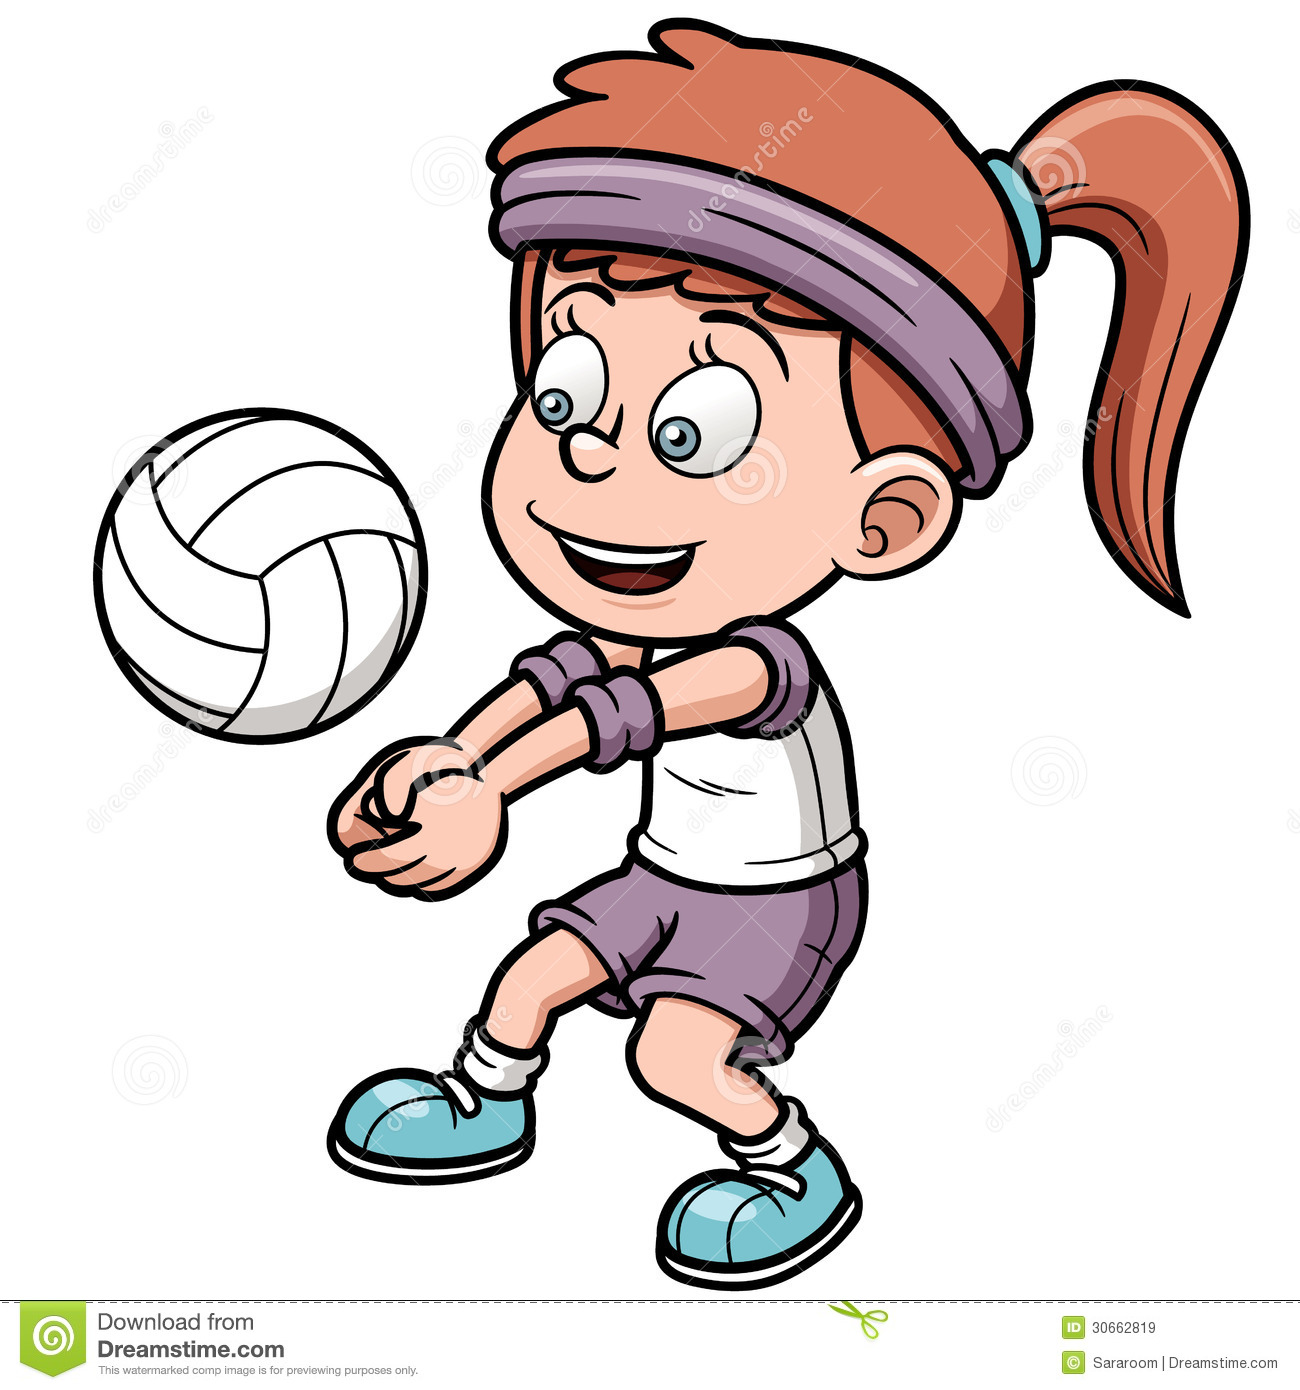 Volley clipart clipart freeuse library Animated Volleyball | Free download best Animated Volleyball ... clipart freeuse library